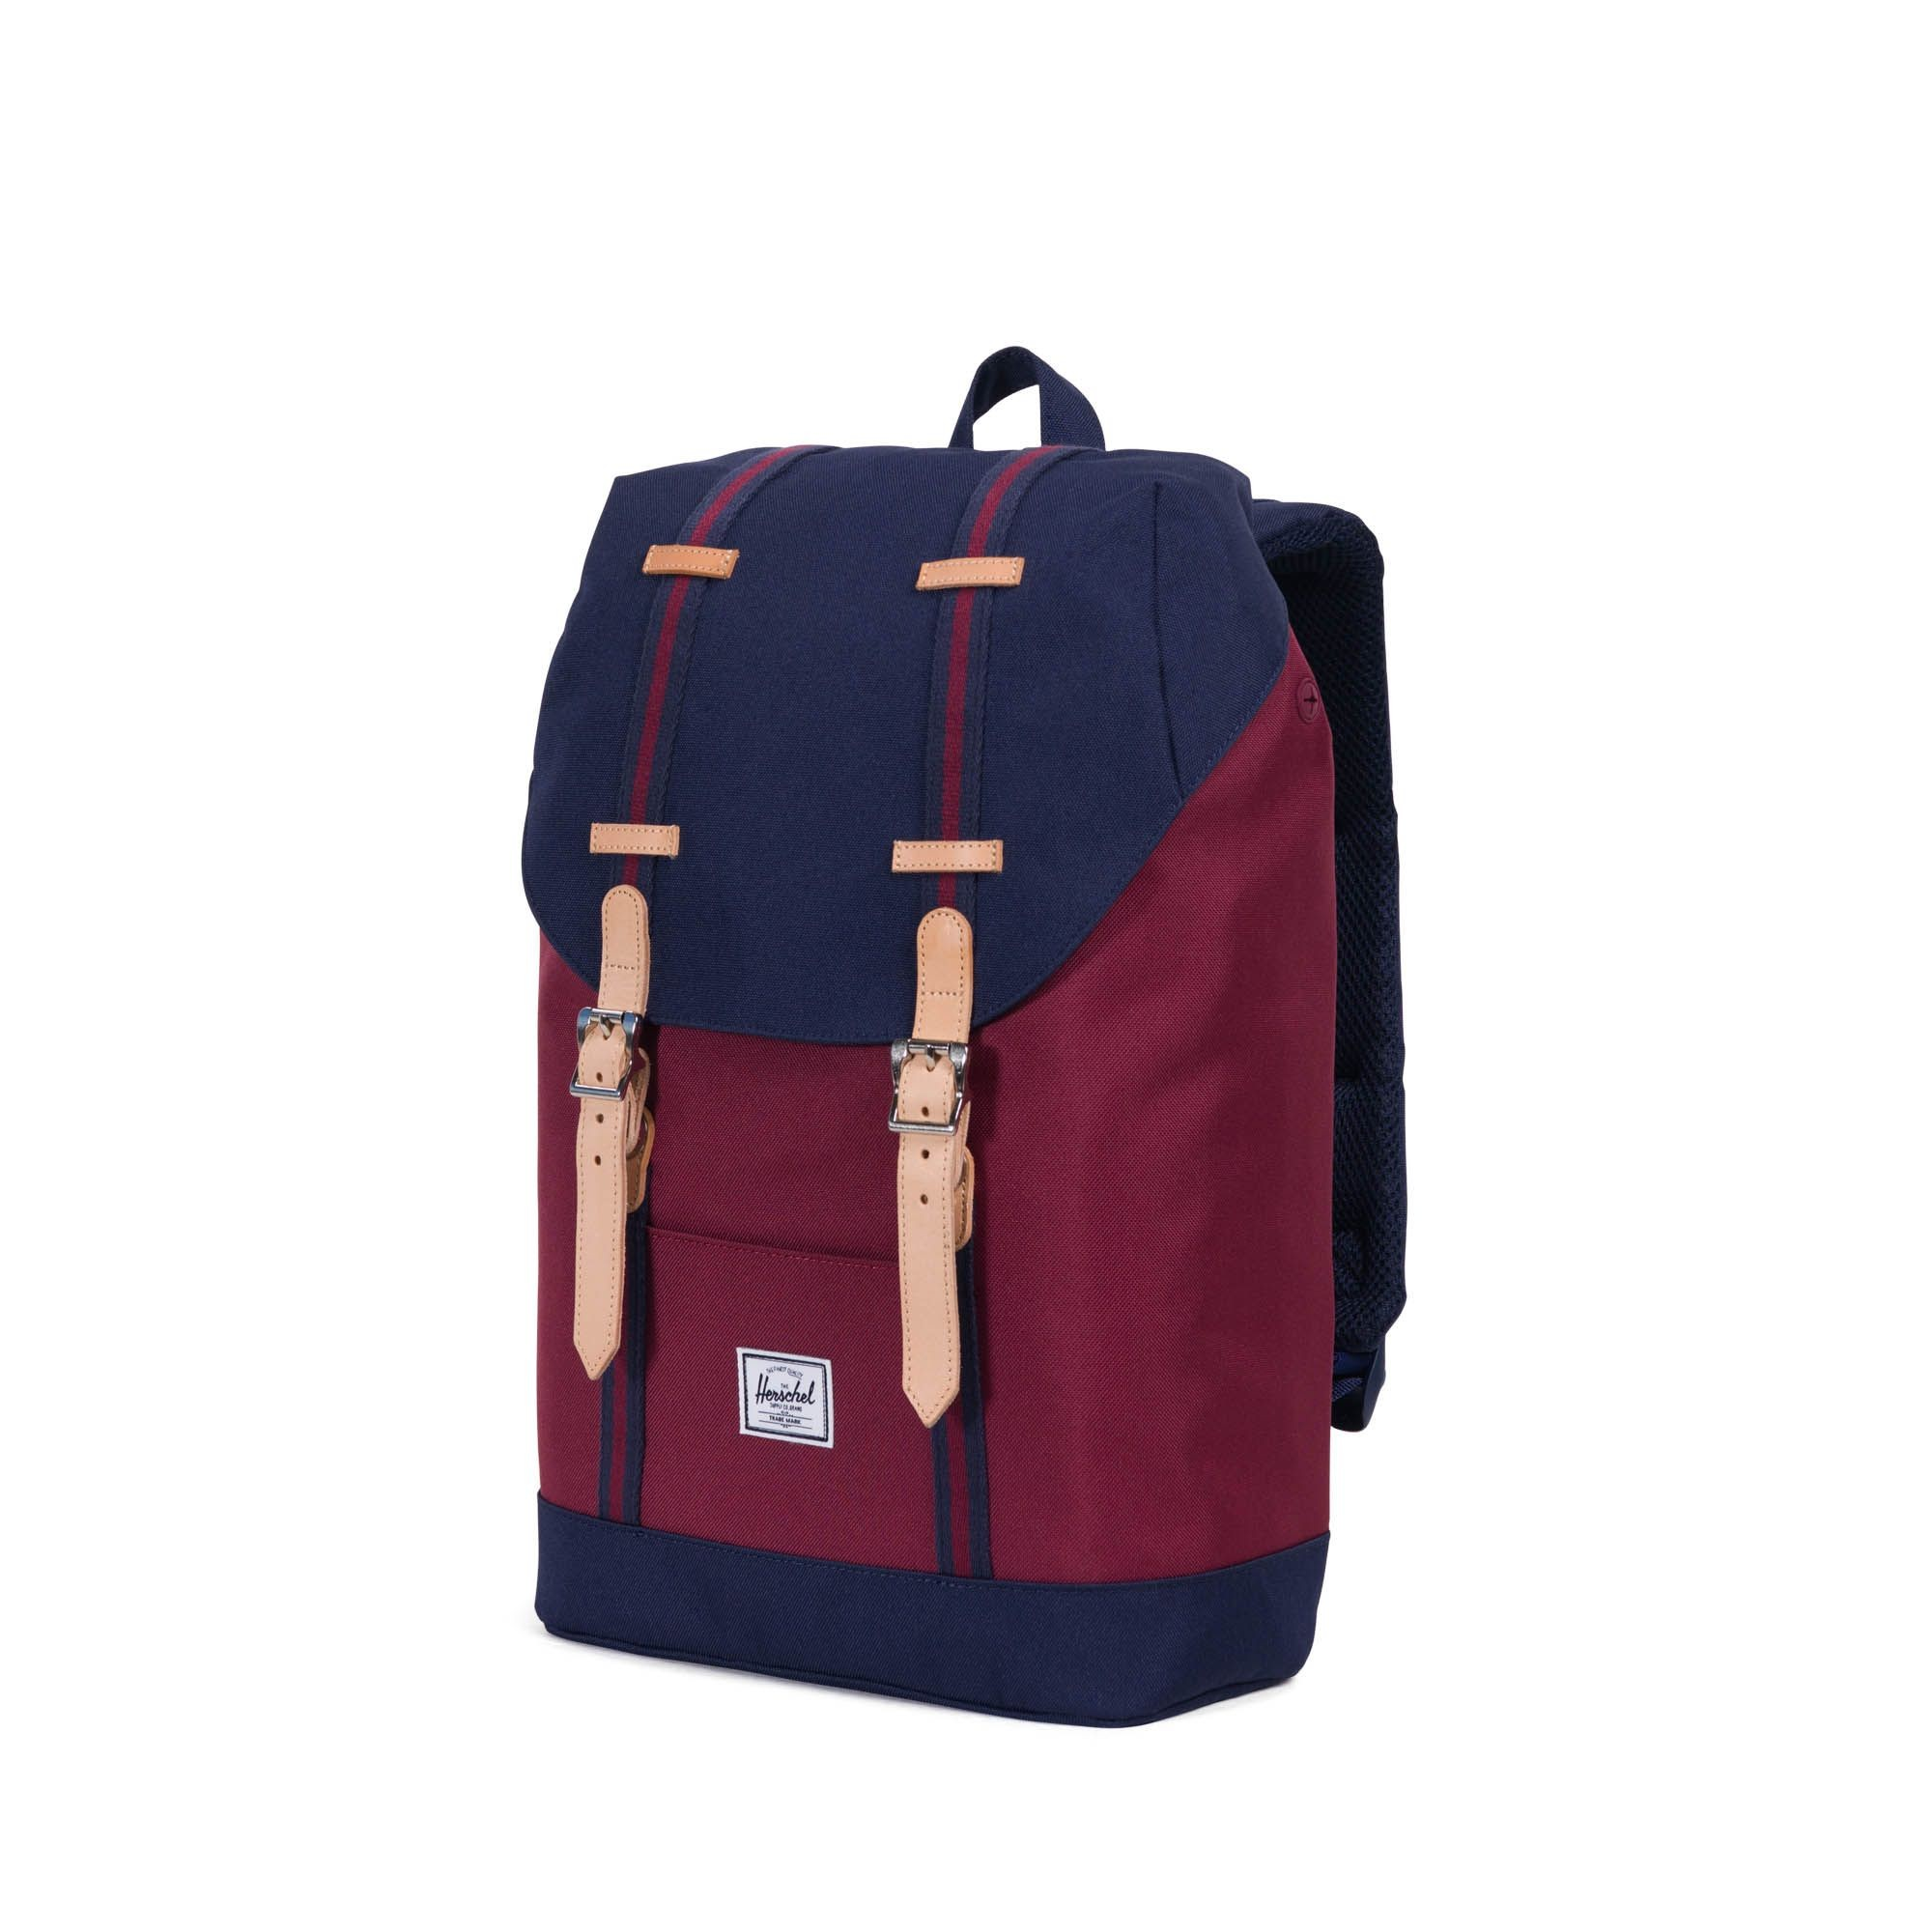 Sac à dos Herschel Retreat Mid-Volume Winetasting Crosshatch/Tan rouge teXV9mw